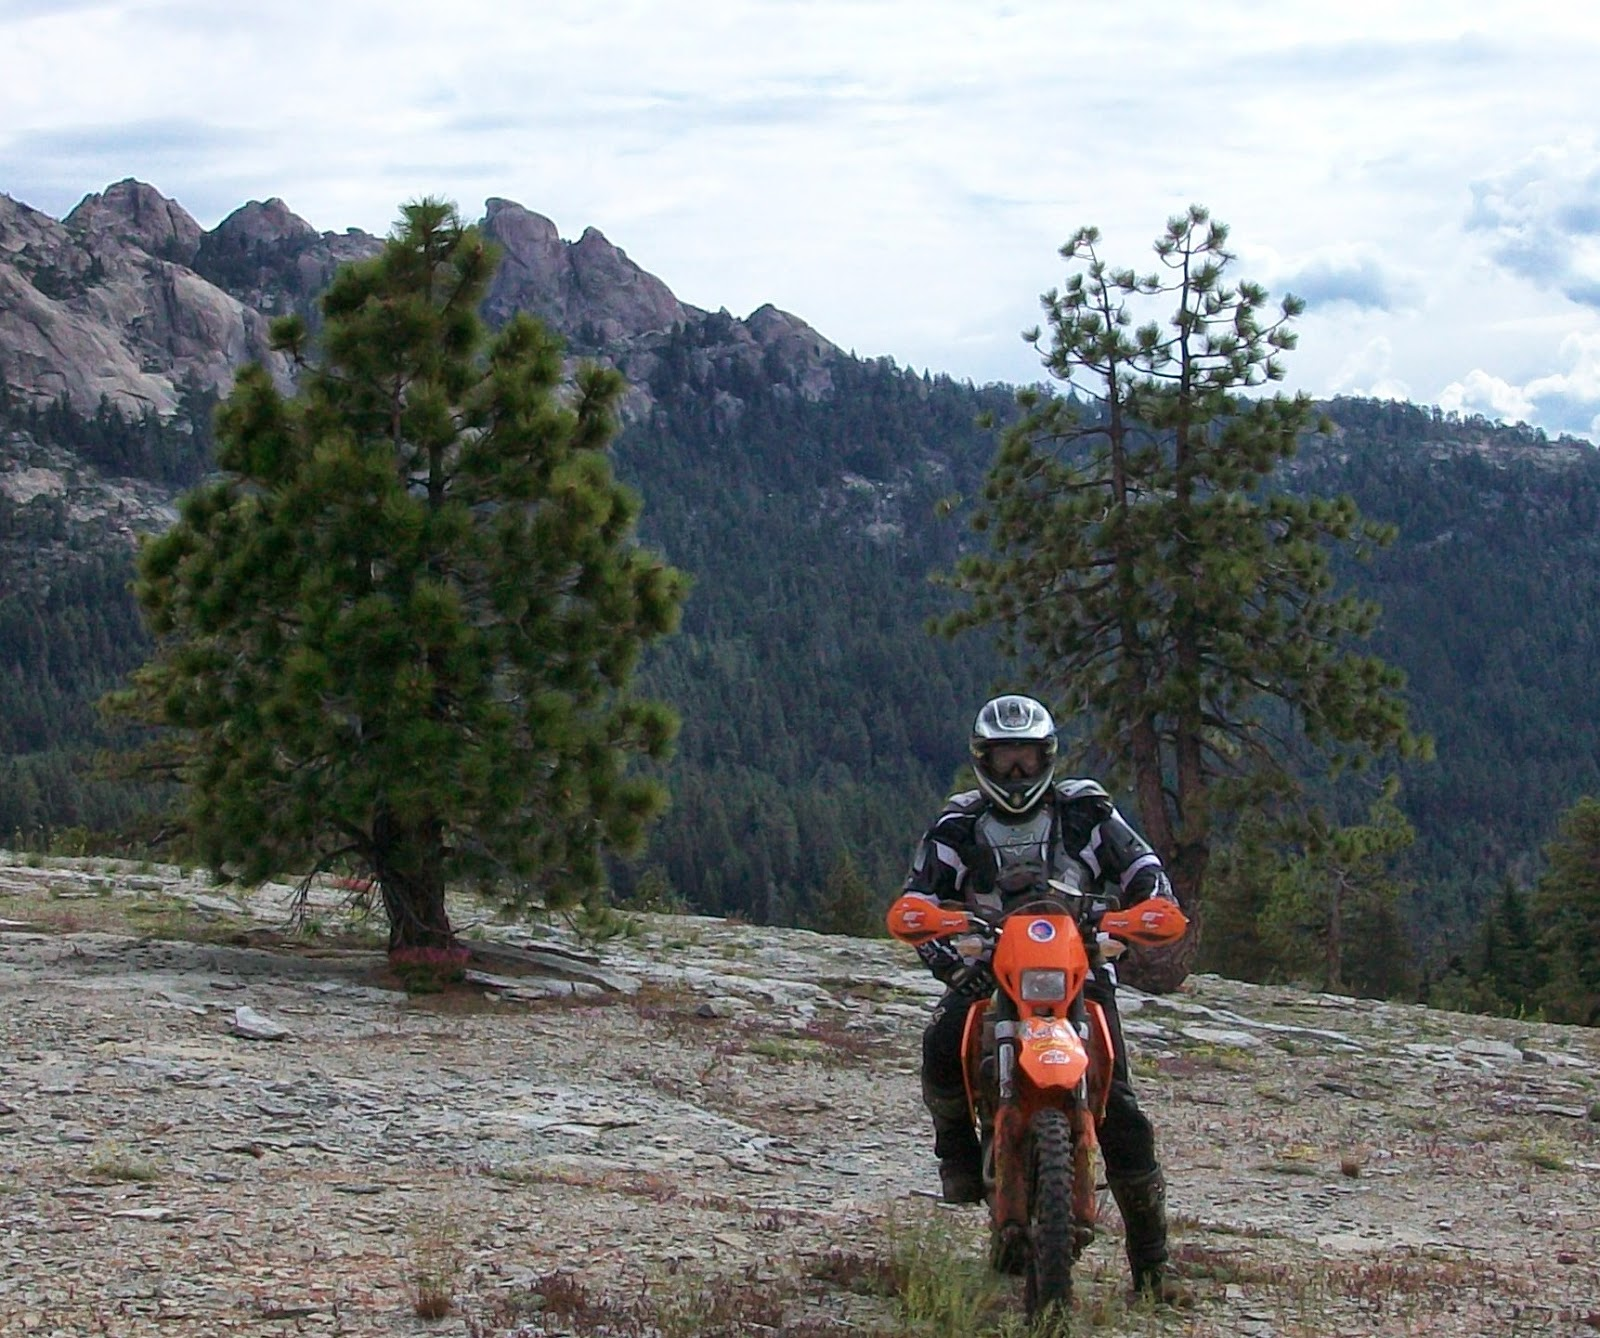 Sierra,Sequoia, Inyo NF's Extend Wilderness Evaluation Comment Deadline to Sept. 24 at Noon